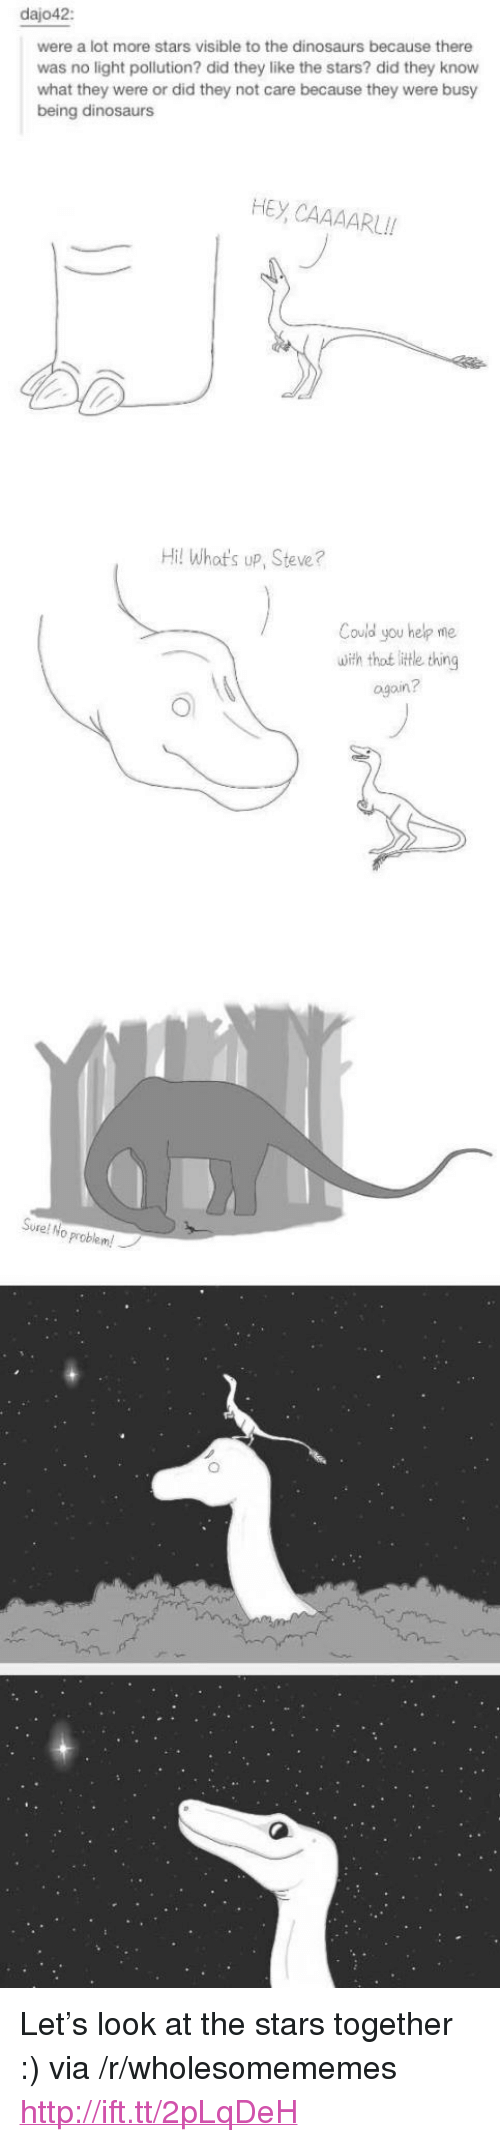 """Thot, Dinosaurs, and Help: dajo42:  were a lot more stars visible to the dinosaurs because there  was no light pollution? did they like the stars? did they know  what they were or did they not care because they were busy  being dinosaurs  HEY CAAAARLI!  Hil Whot's up, Steve?  Could you help me  uiih thot itte thing  ogoin?  Sure! No  problem! <p>Let&rsquo;s look at the stars together :) via /r/wholesomememes <a href=""""http://ift.tt/2pLqDeH"""">http://ift.tt/2pLqDeH</a></p>"""